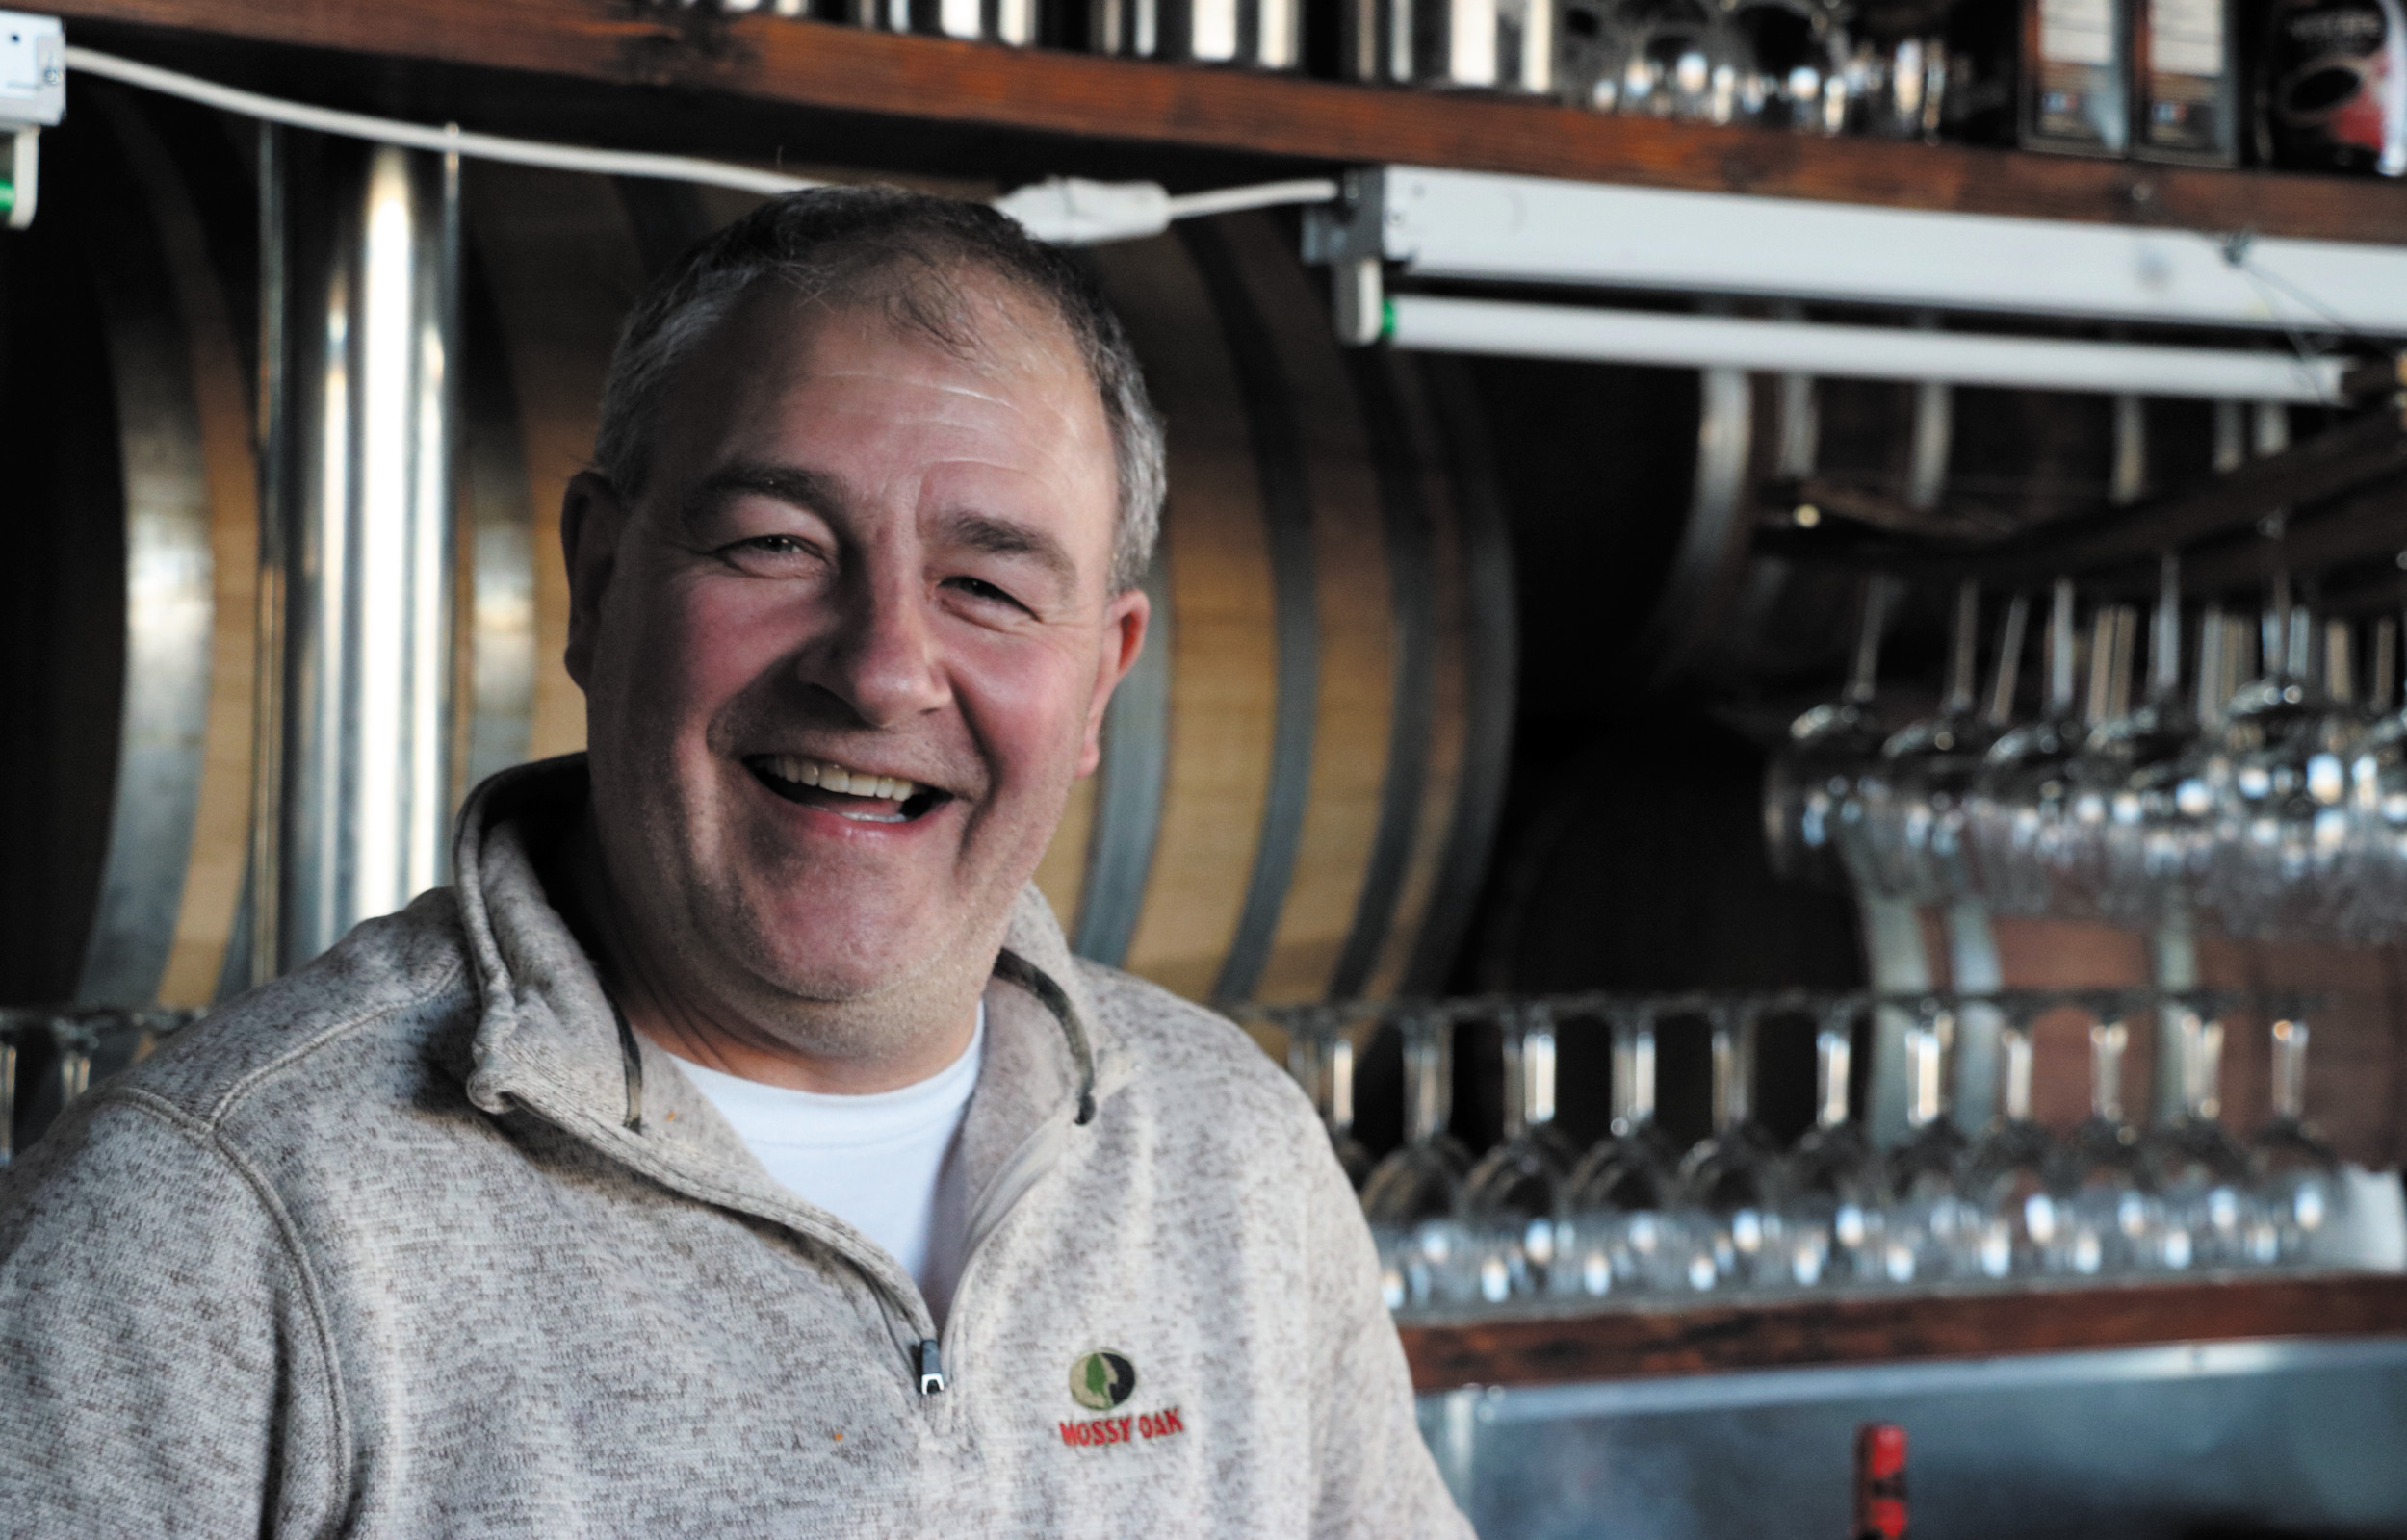 Gary Tassler, co-owner of Purgatory Cellars in Parker, says business has been booming since the winery opened in April 2015. Photos by Chris Michlewicz